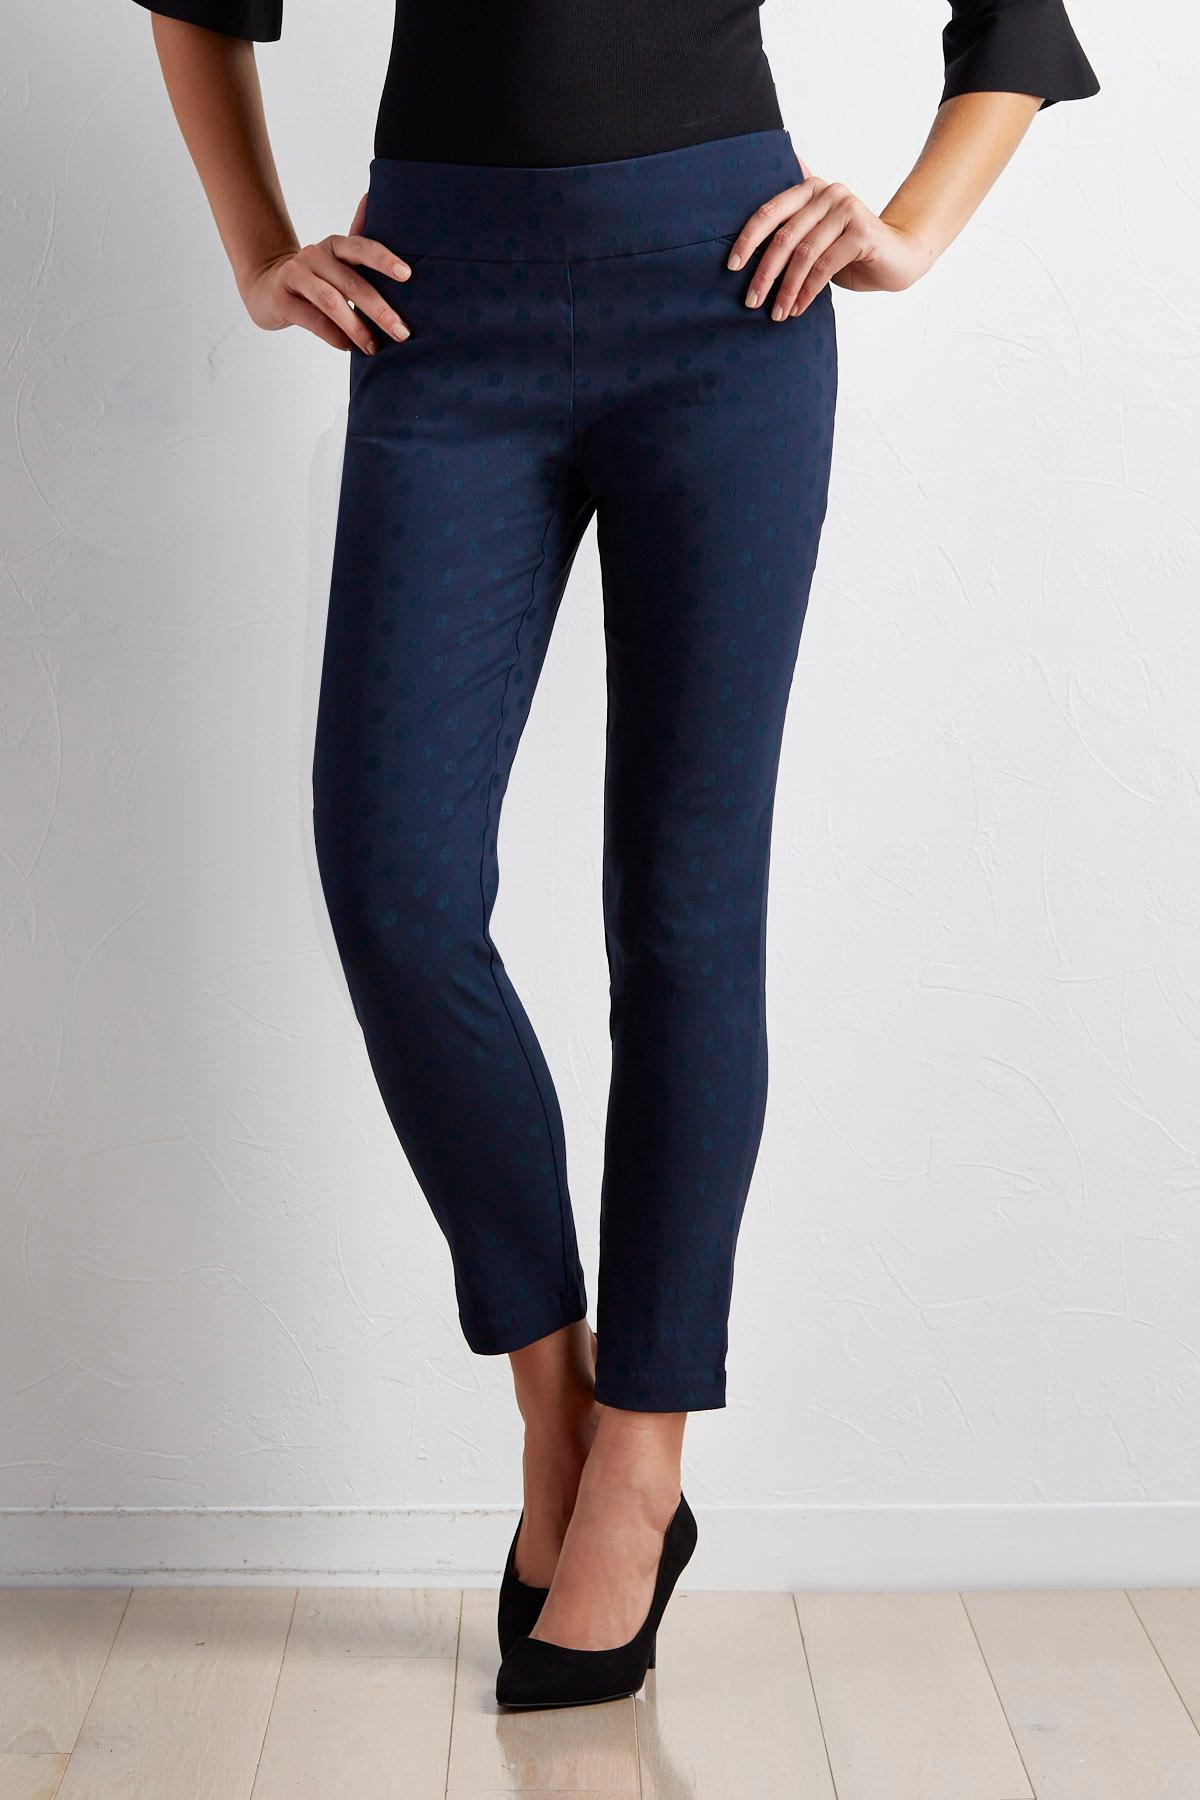 Tonal Polka Dot Slim Leg Pants